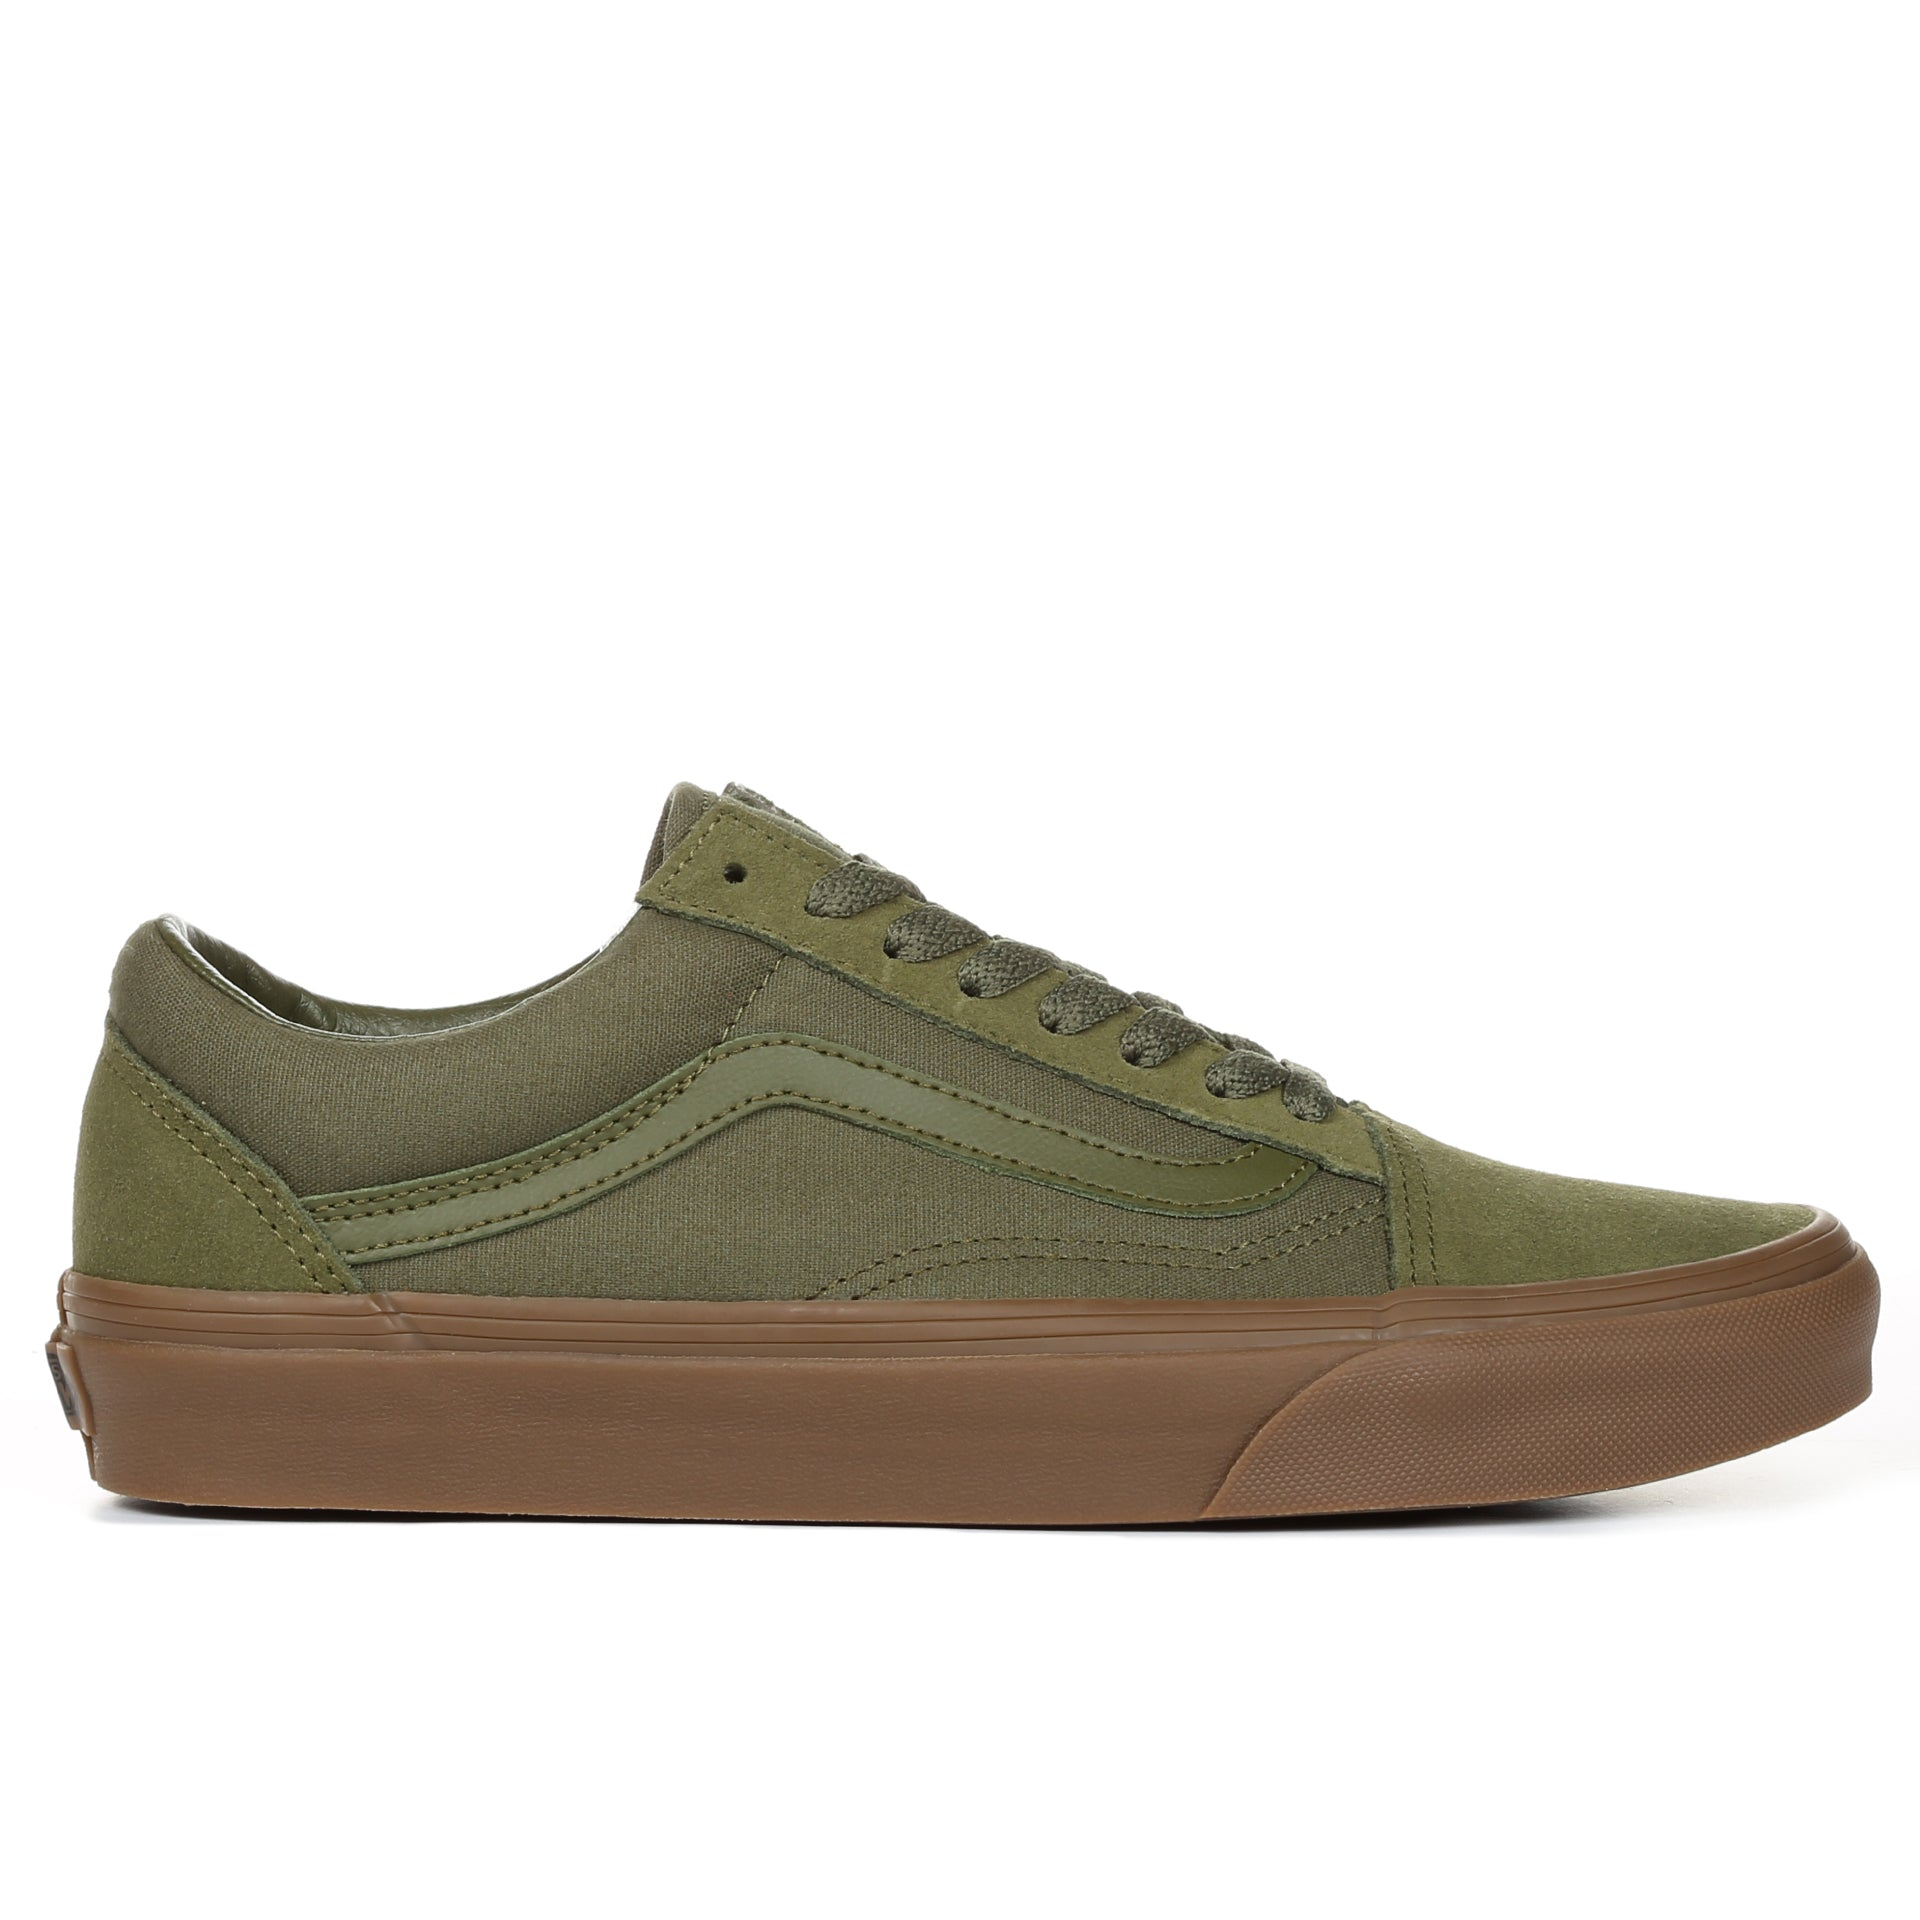 Vans Old Skool - Winter Moss Gum - New Star 2b13a8e1ae